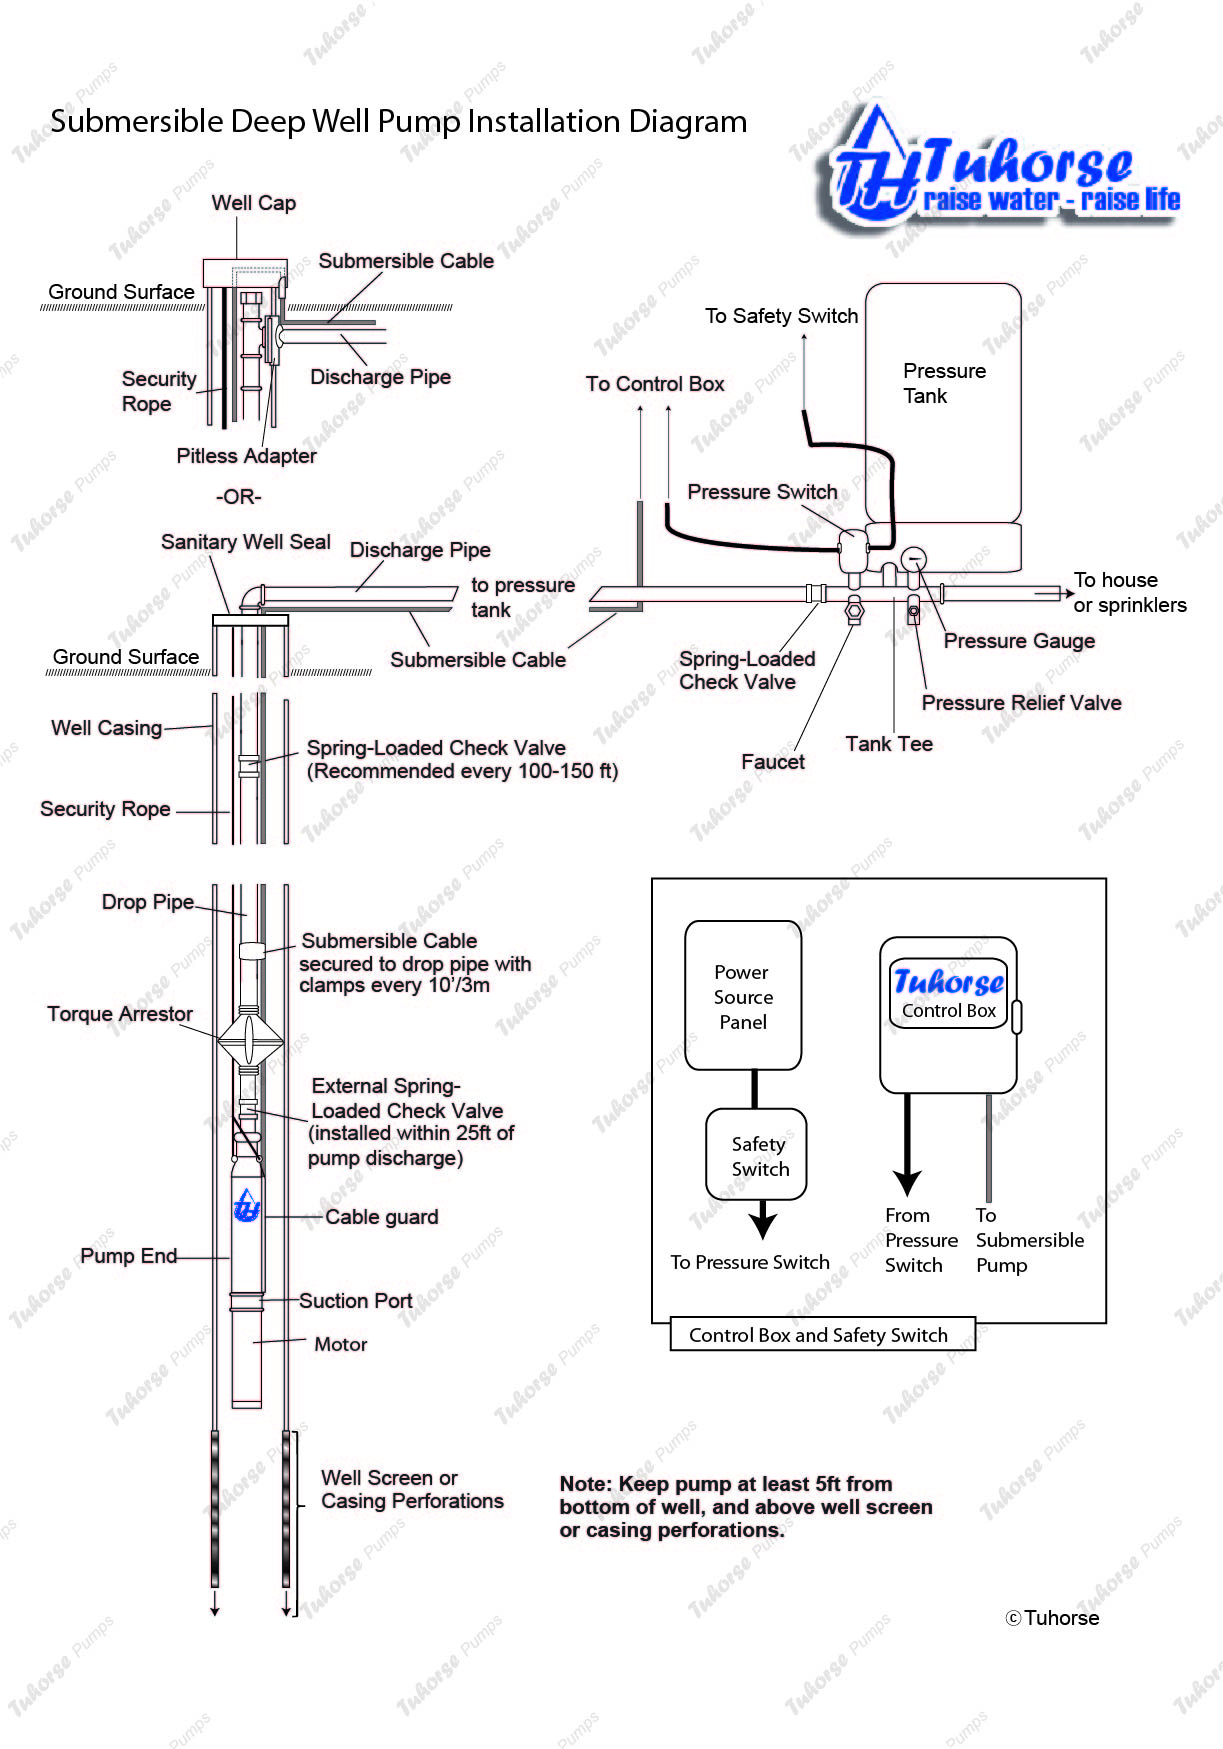 watermarkedinstallationdiagram4 pump installation water well pump wiring diagram at nearapp.co